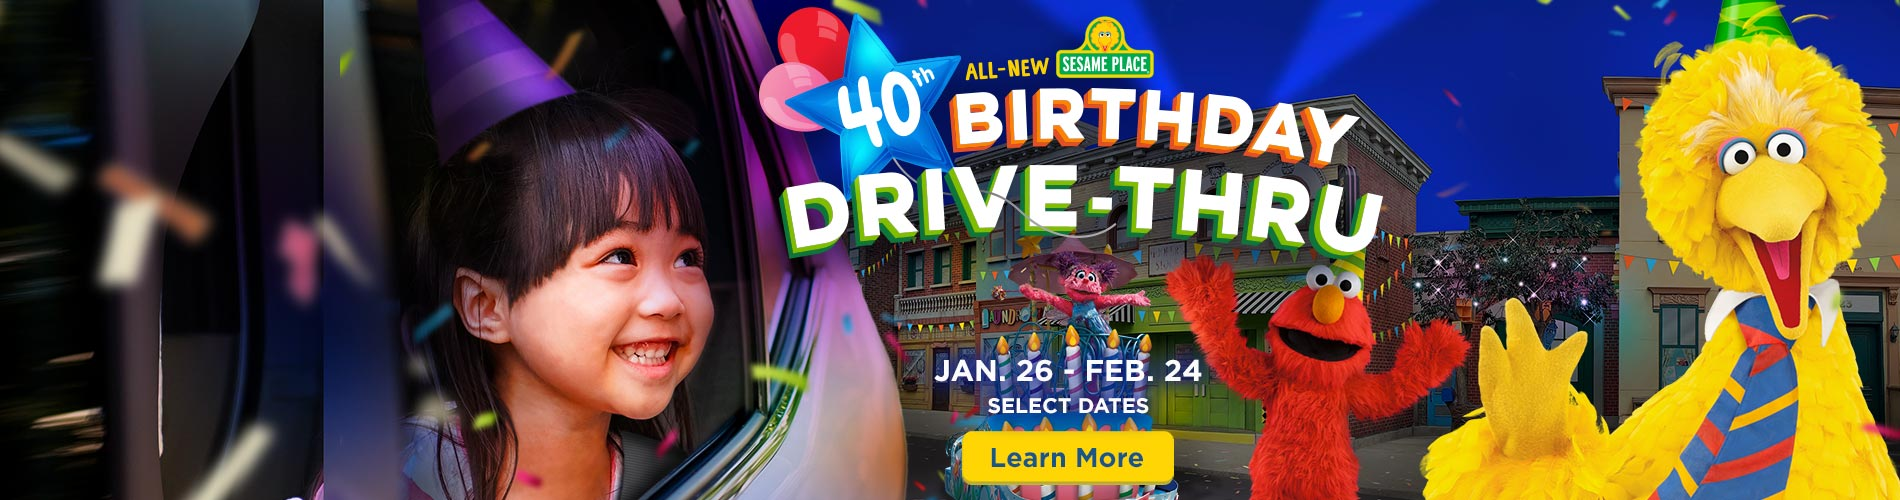 All-New Sesame Place 40th Birthday Drive-Thru Experience